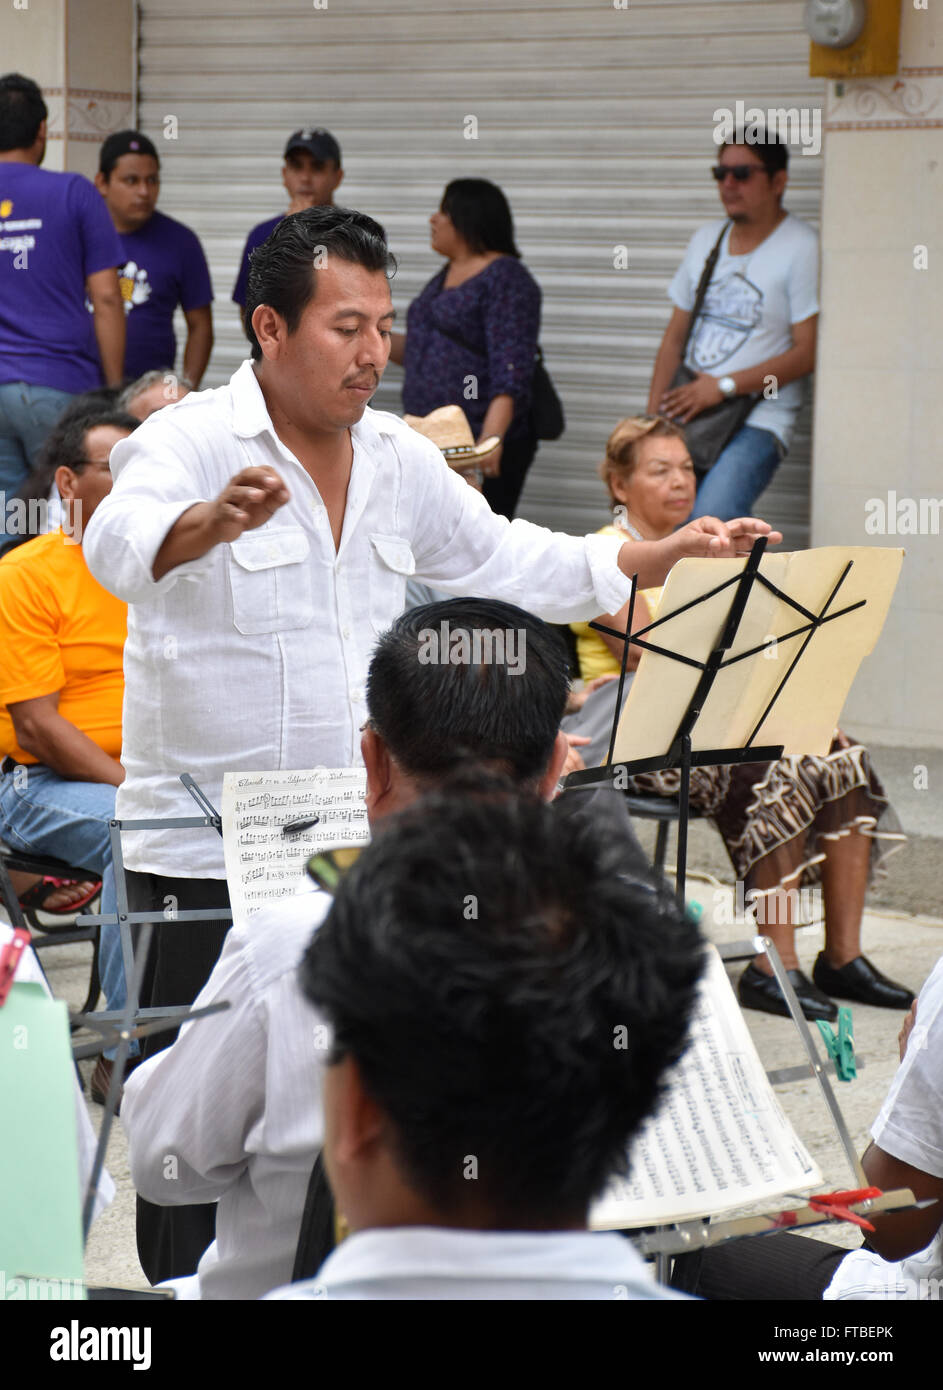 Musicians playing at local city cultural event in Acapulco, Mexico Stock Photo